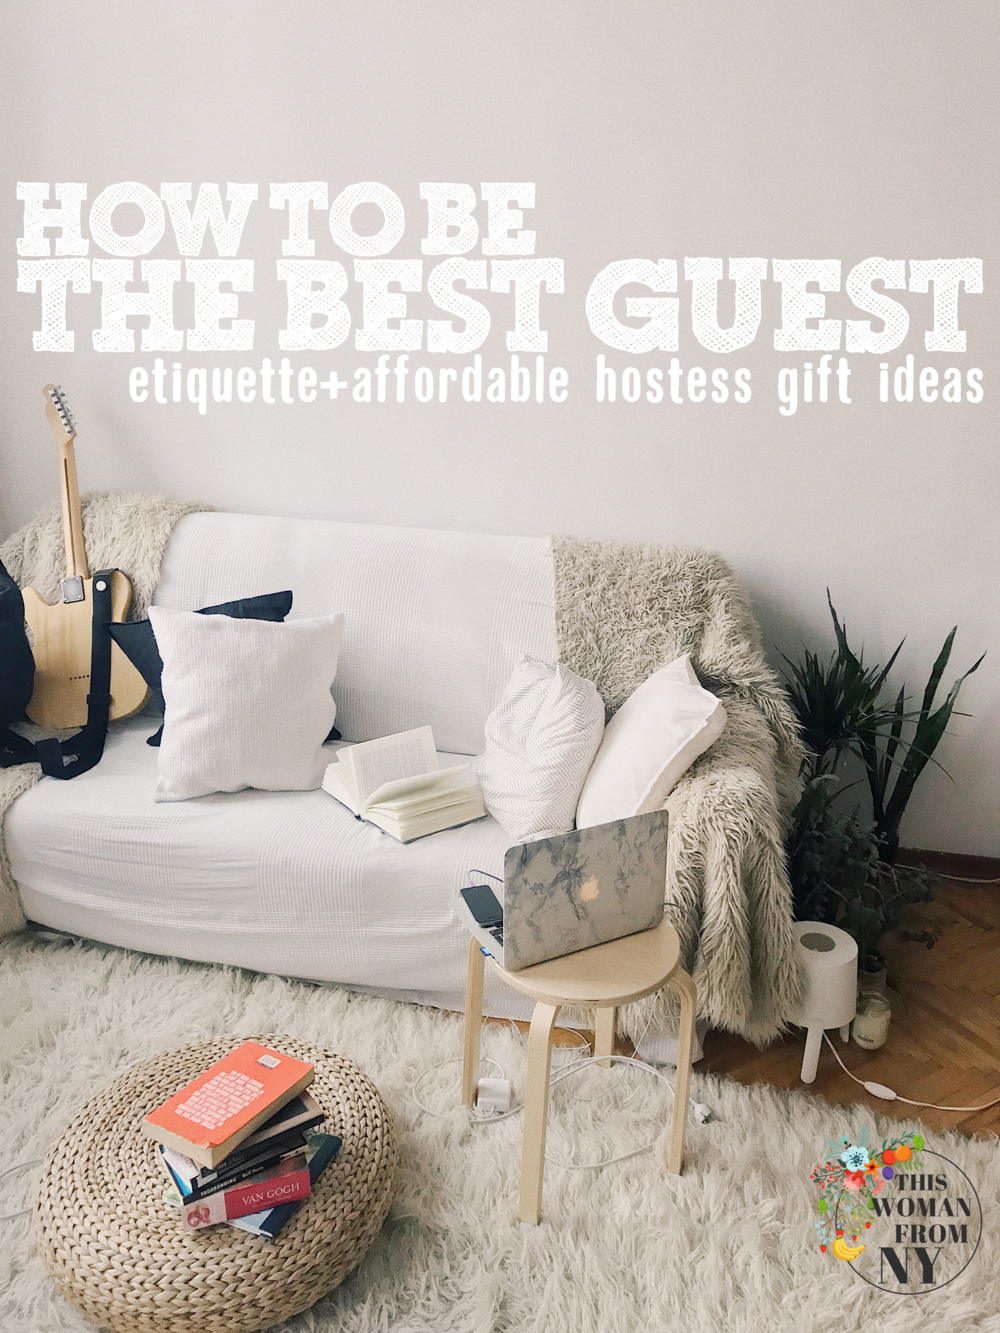 How To Be The Best Guest | THISWOMANFROMNY